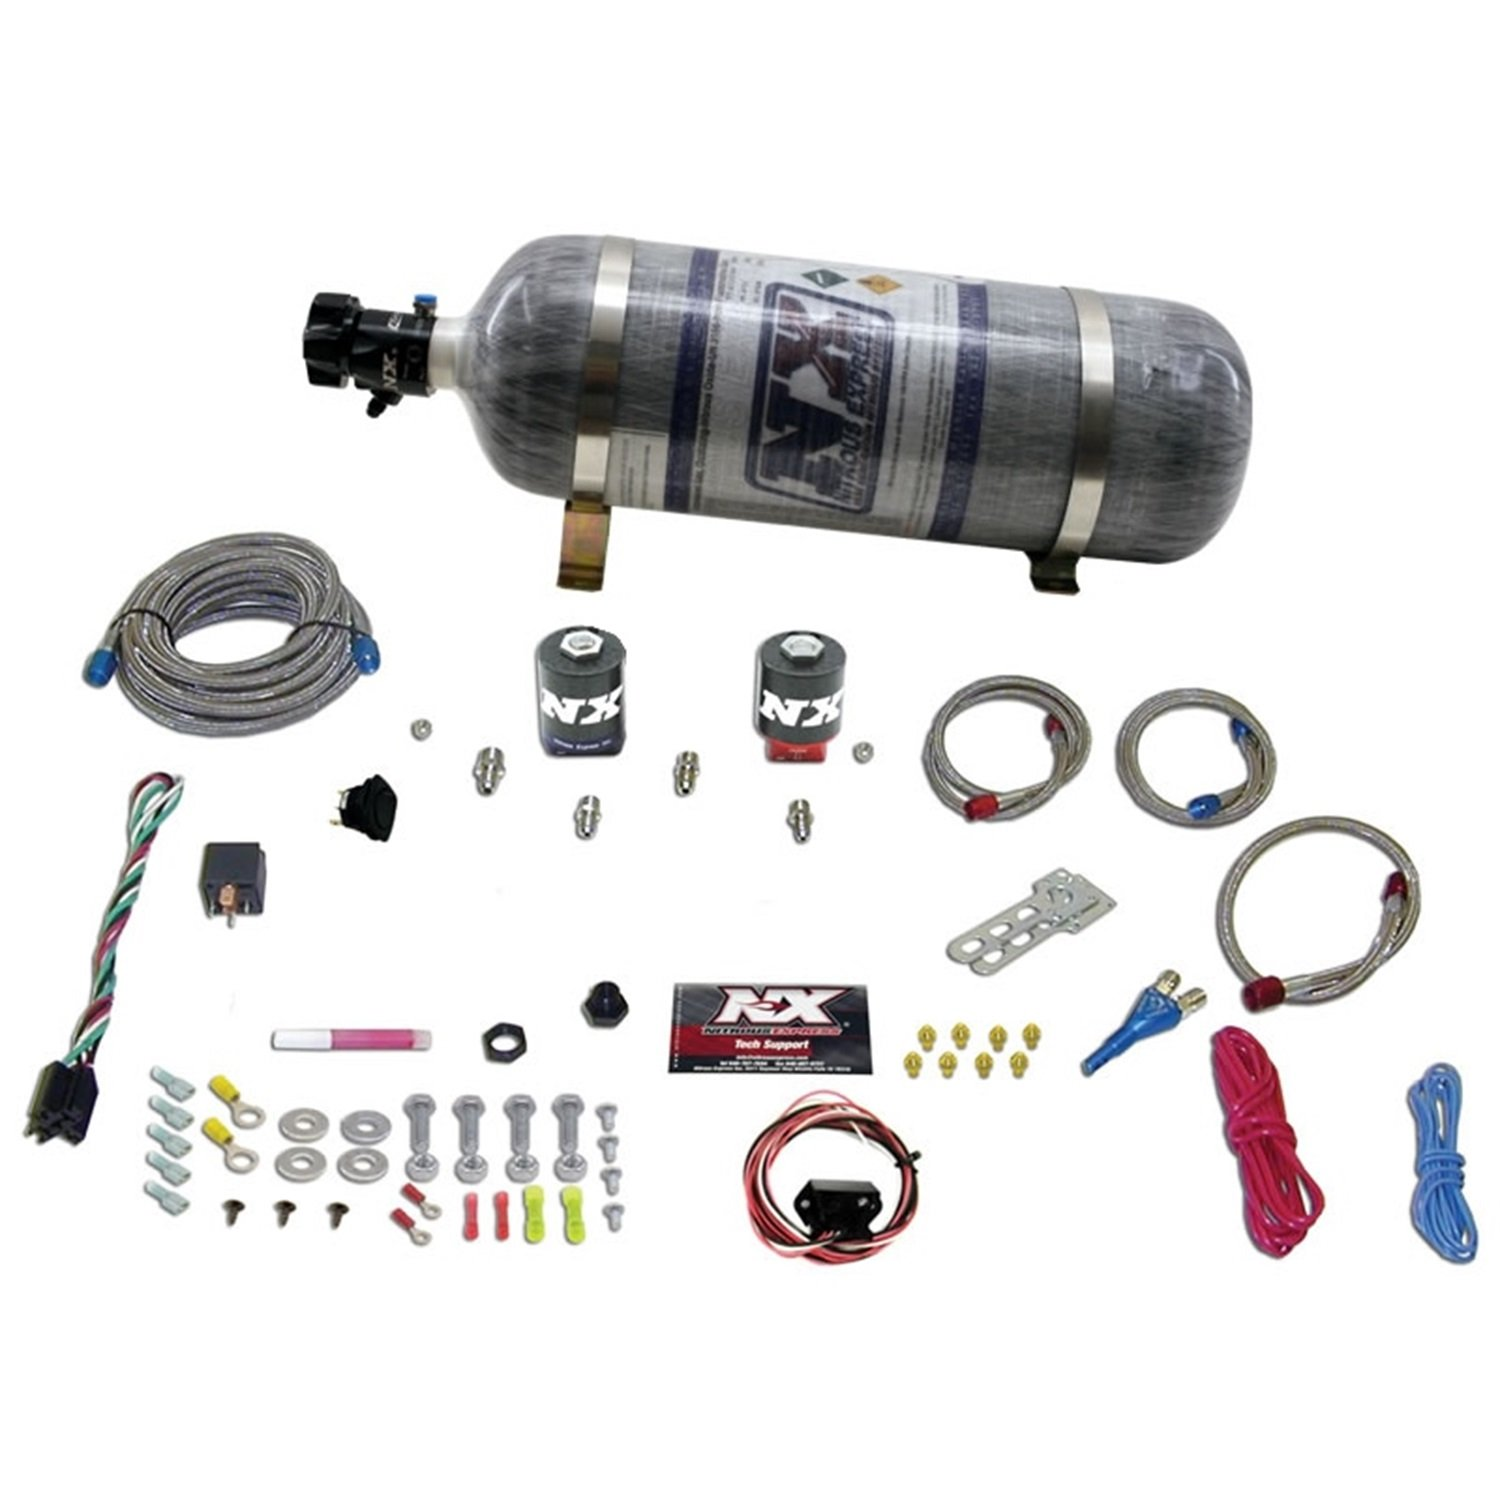 50%OFF Nitrous Express 20919-12 35-150 HP Universal Single Nozzle ...